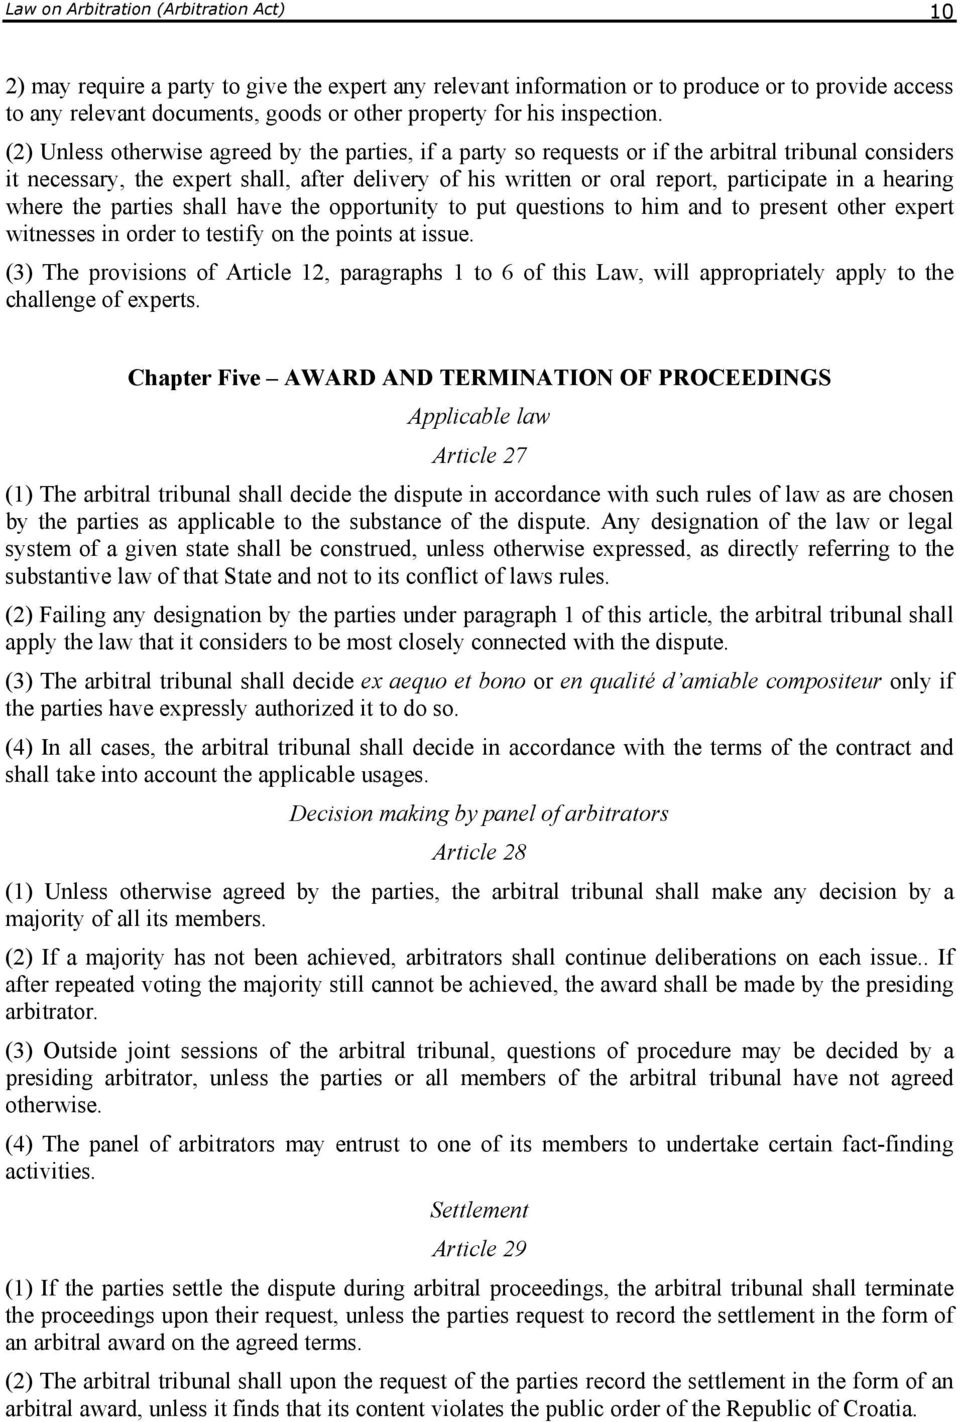 (2) Unless otherwise agreed by the parties, if a party so requests or if the arbitral tribunal considers it necessary, the expert shall, after delivery of his written or oral report, participate in a